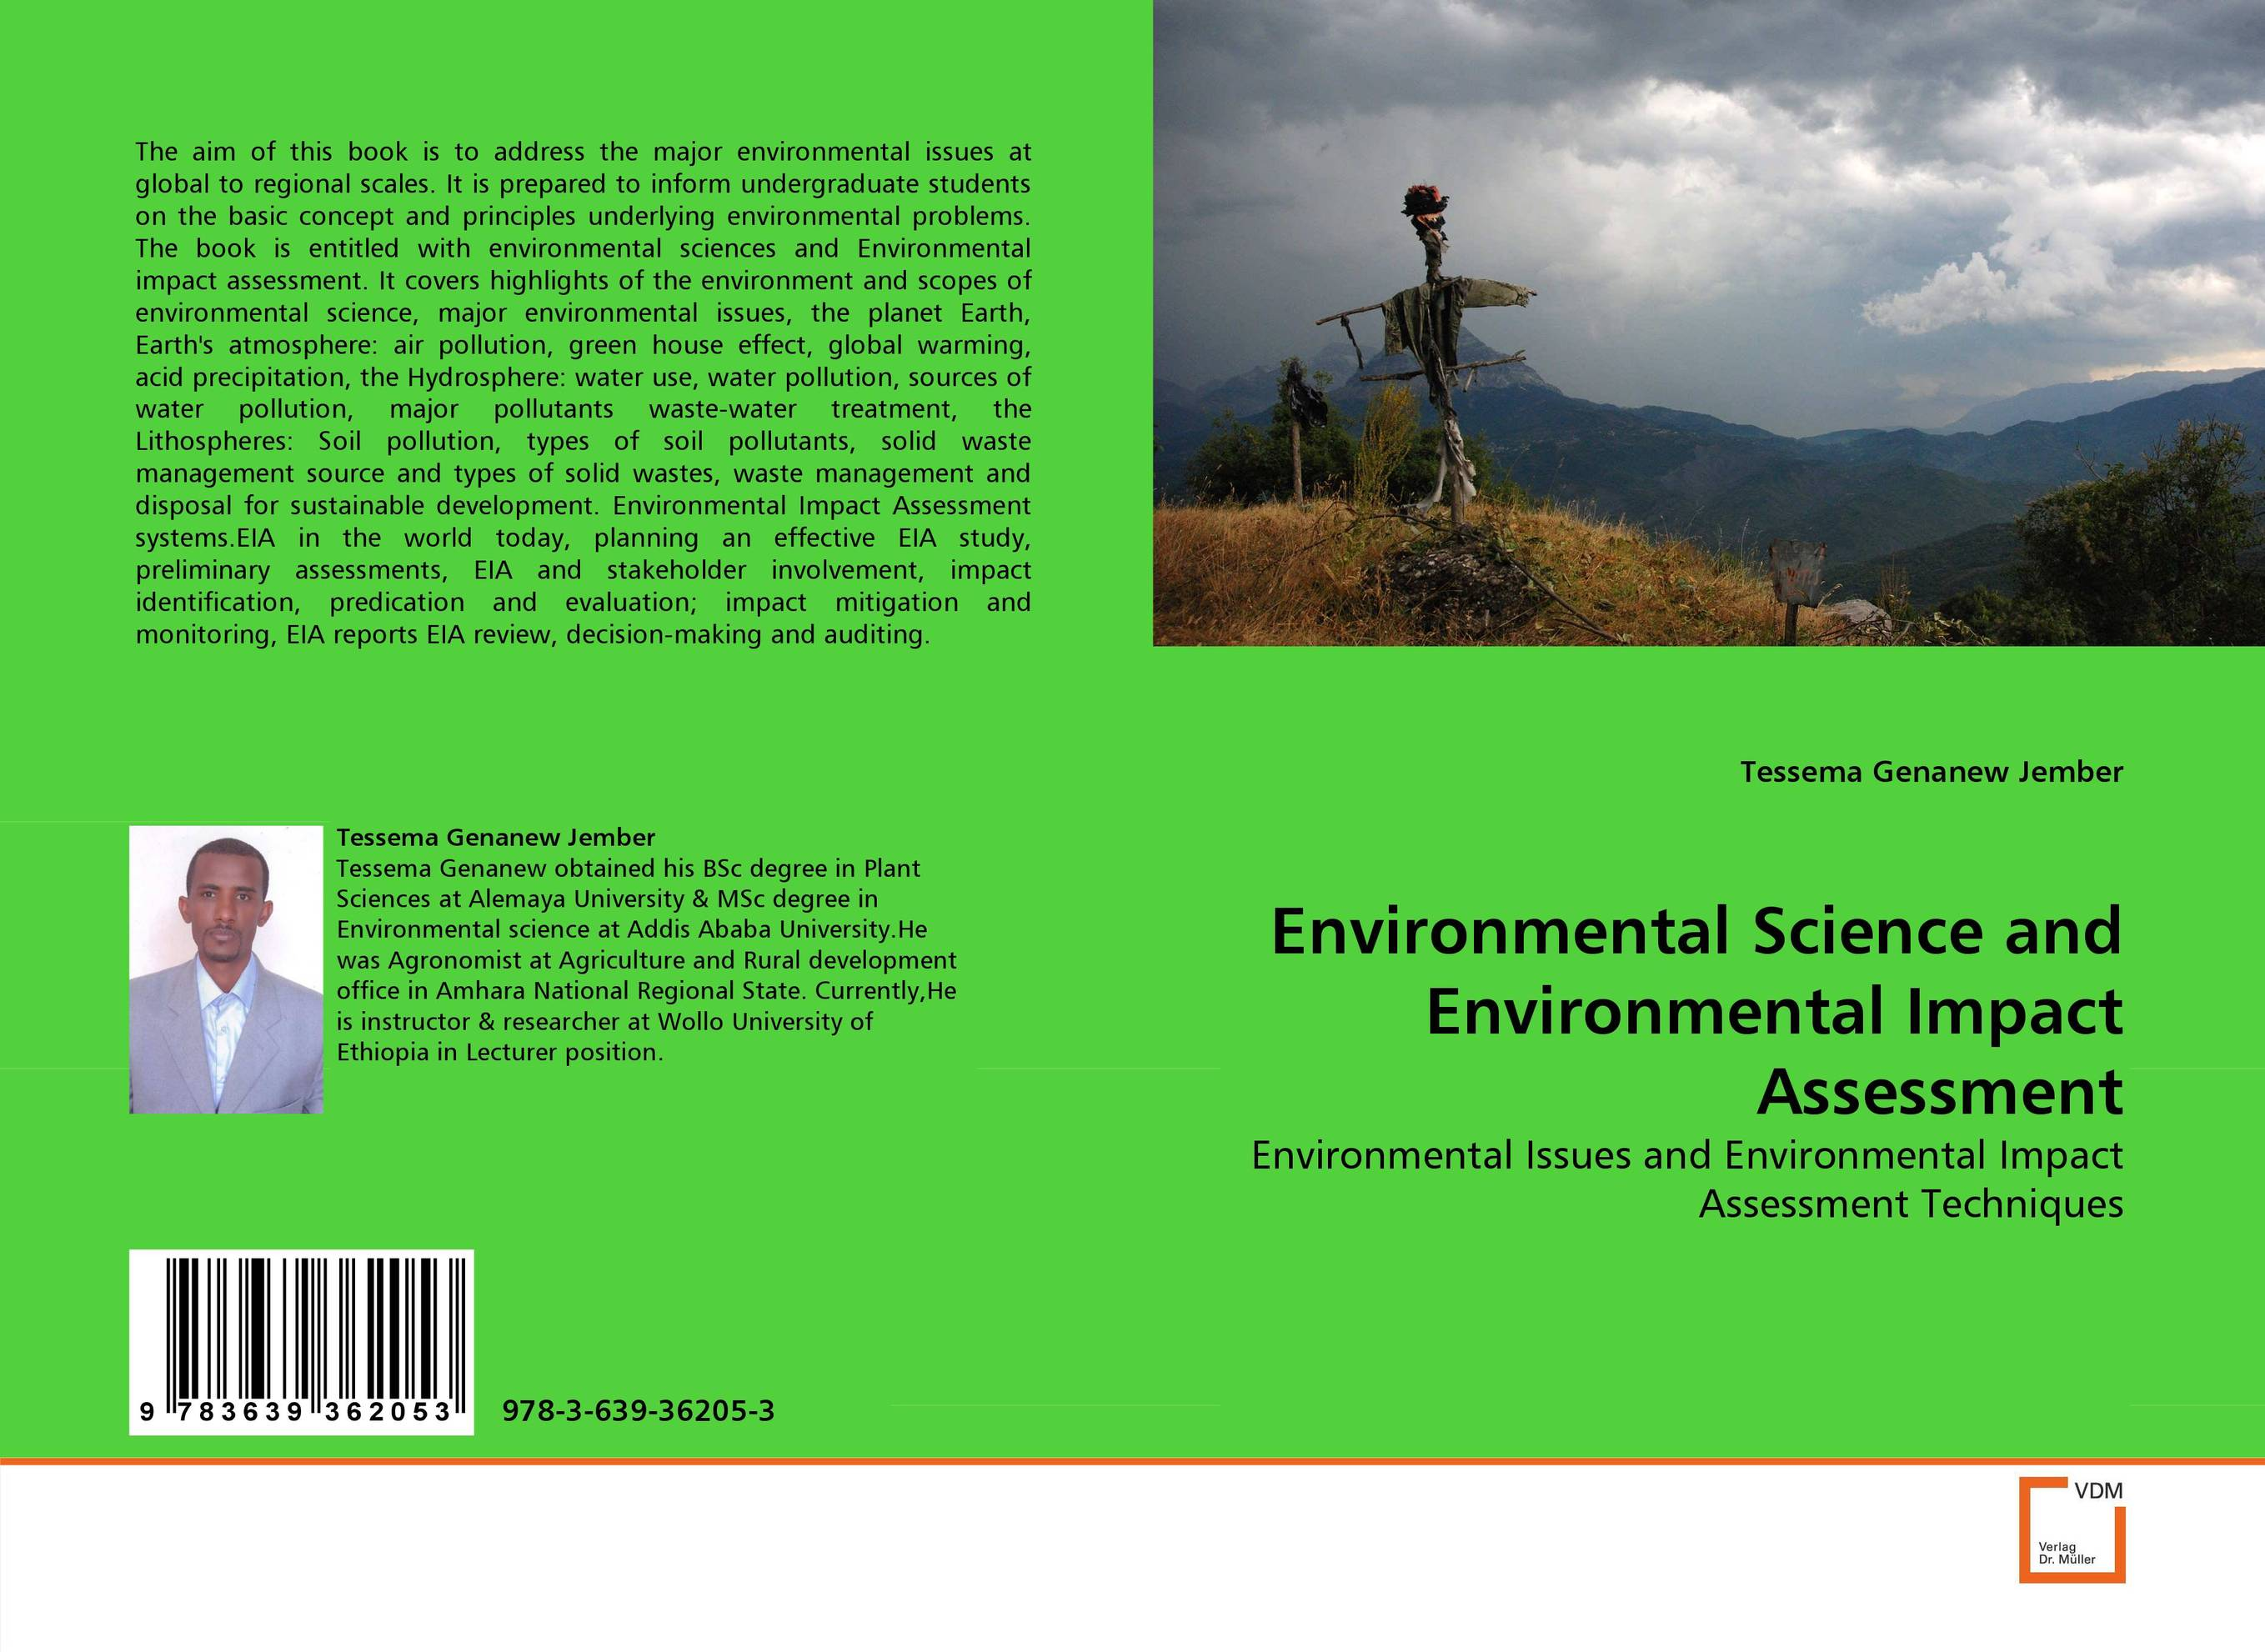 Environmental Science and Environmental Impact Assessment eia uus kahe näoga jumal